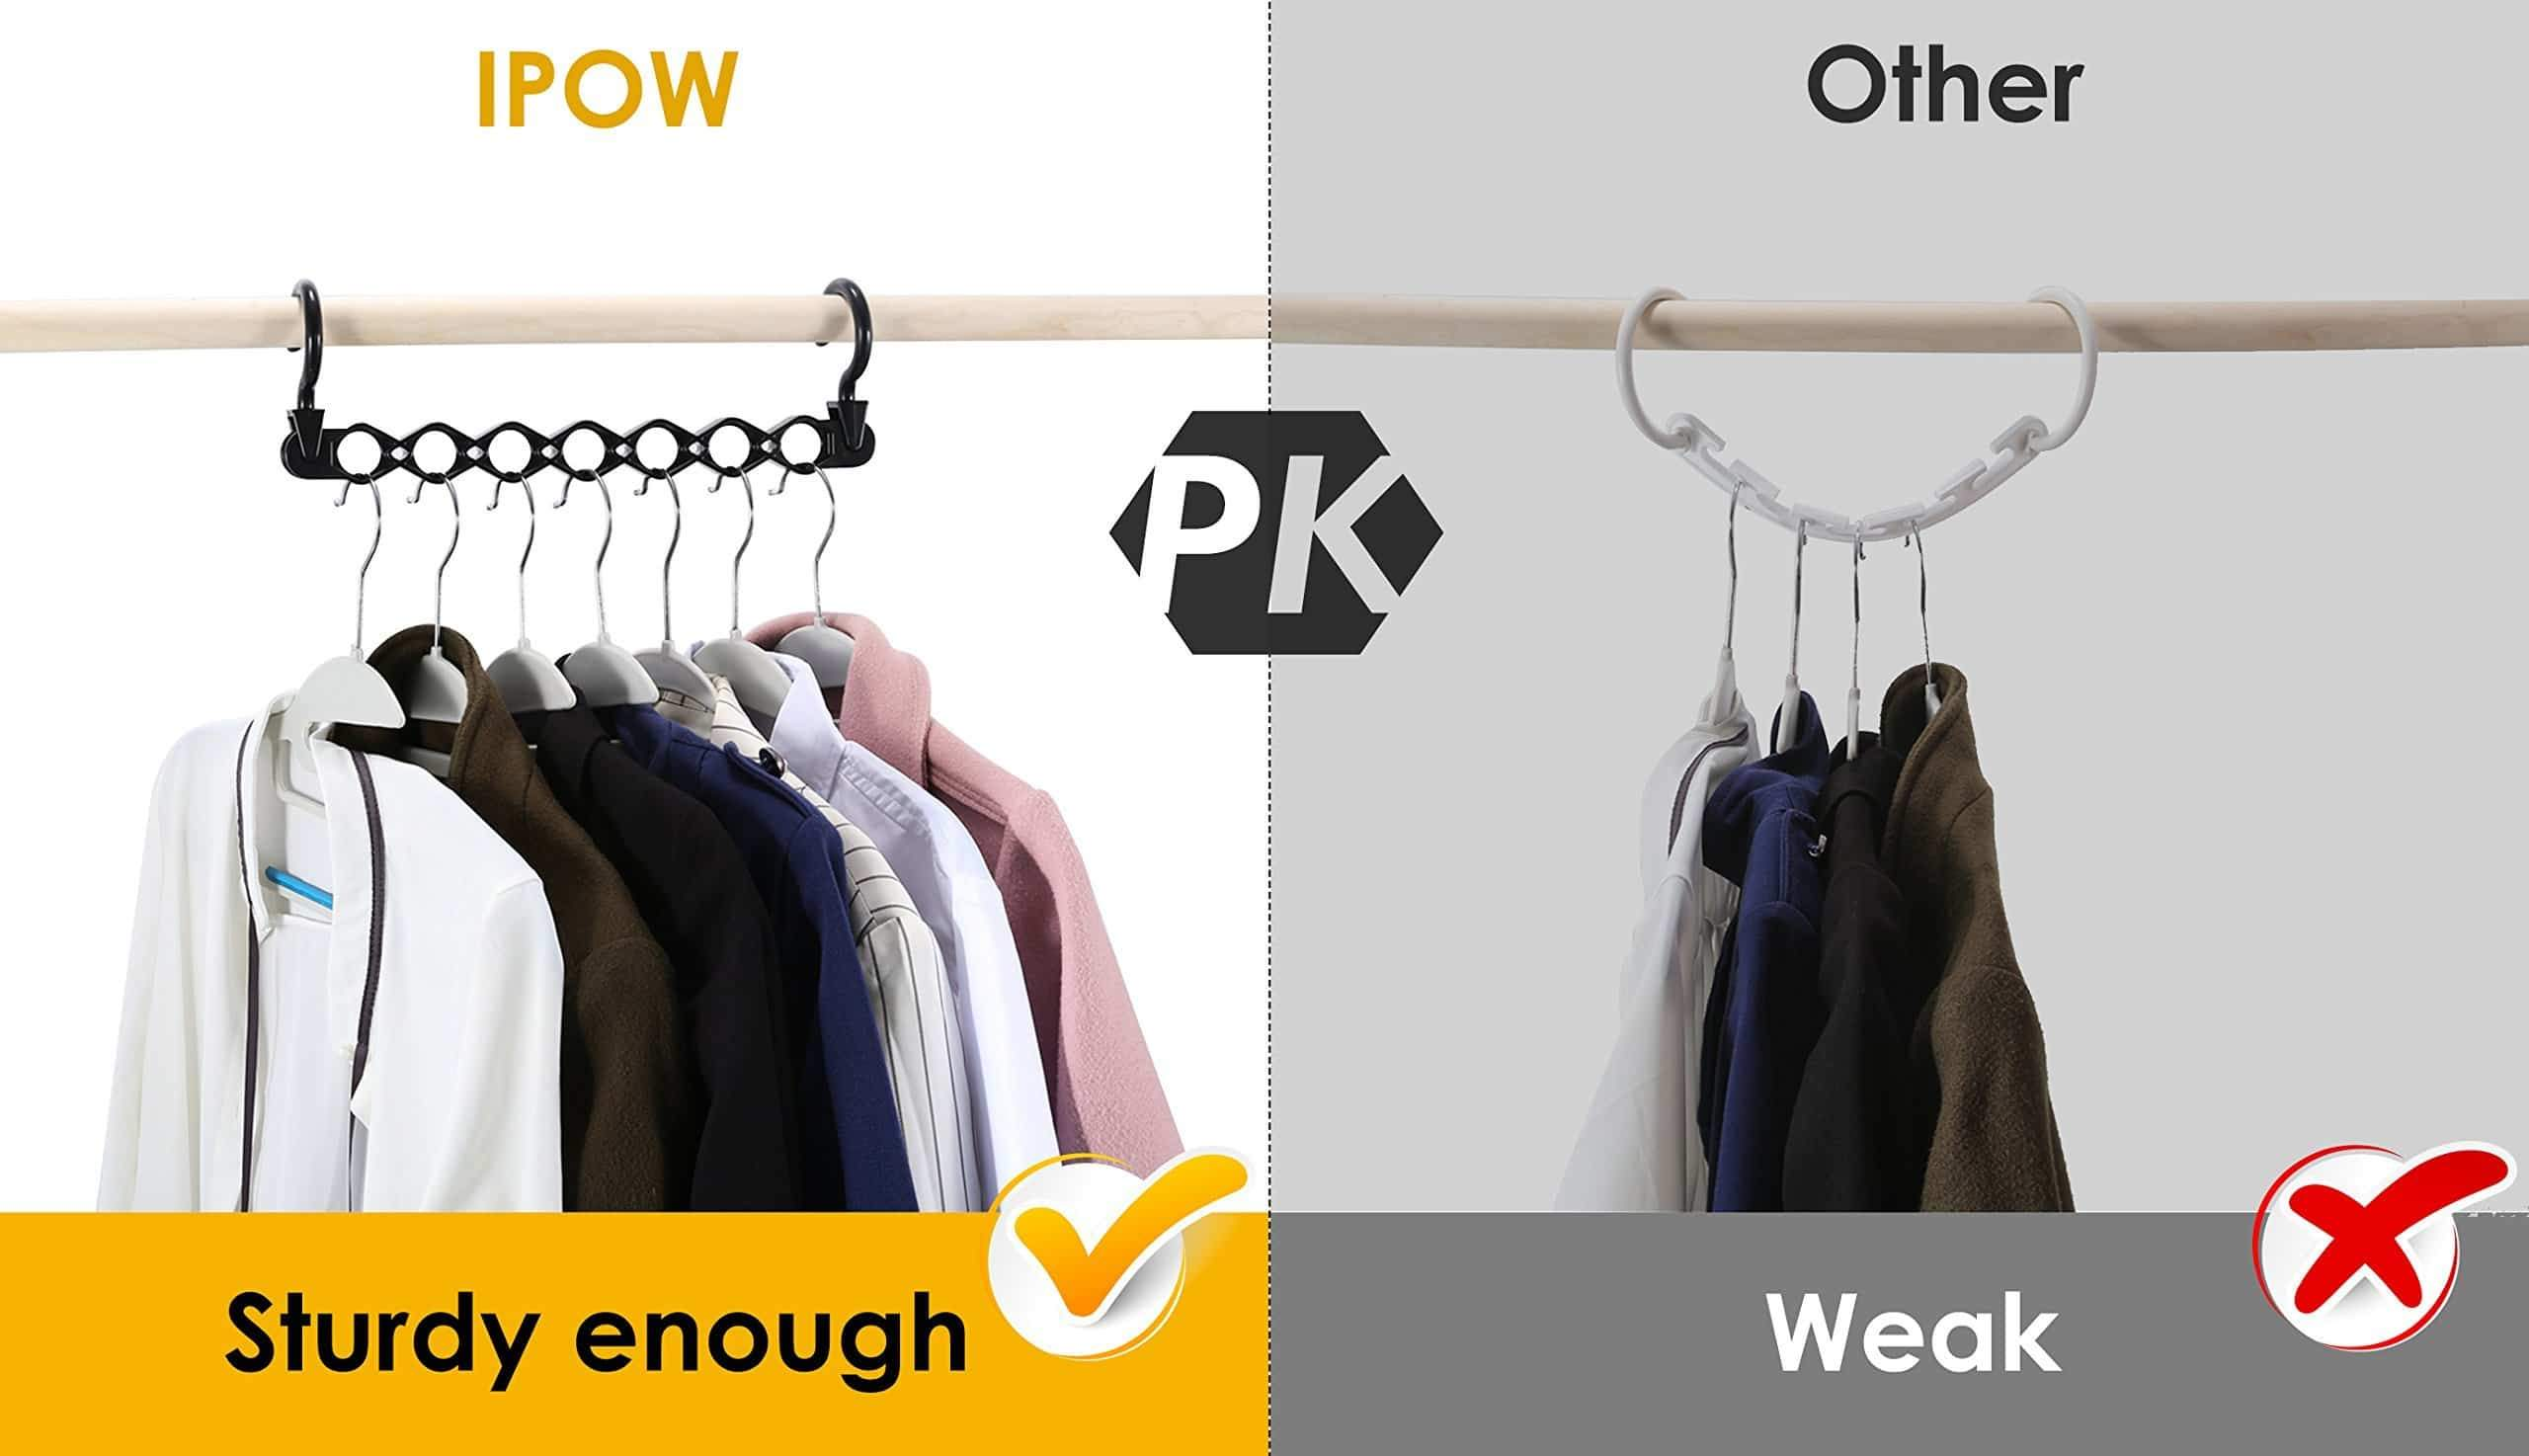 Best ipow 6 pack magic hanger heavy duty plastic closet space saving hanger wardrobe clothing cascading hanger organizer for easy wrinkle free shirts pants and coats